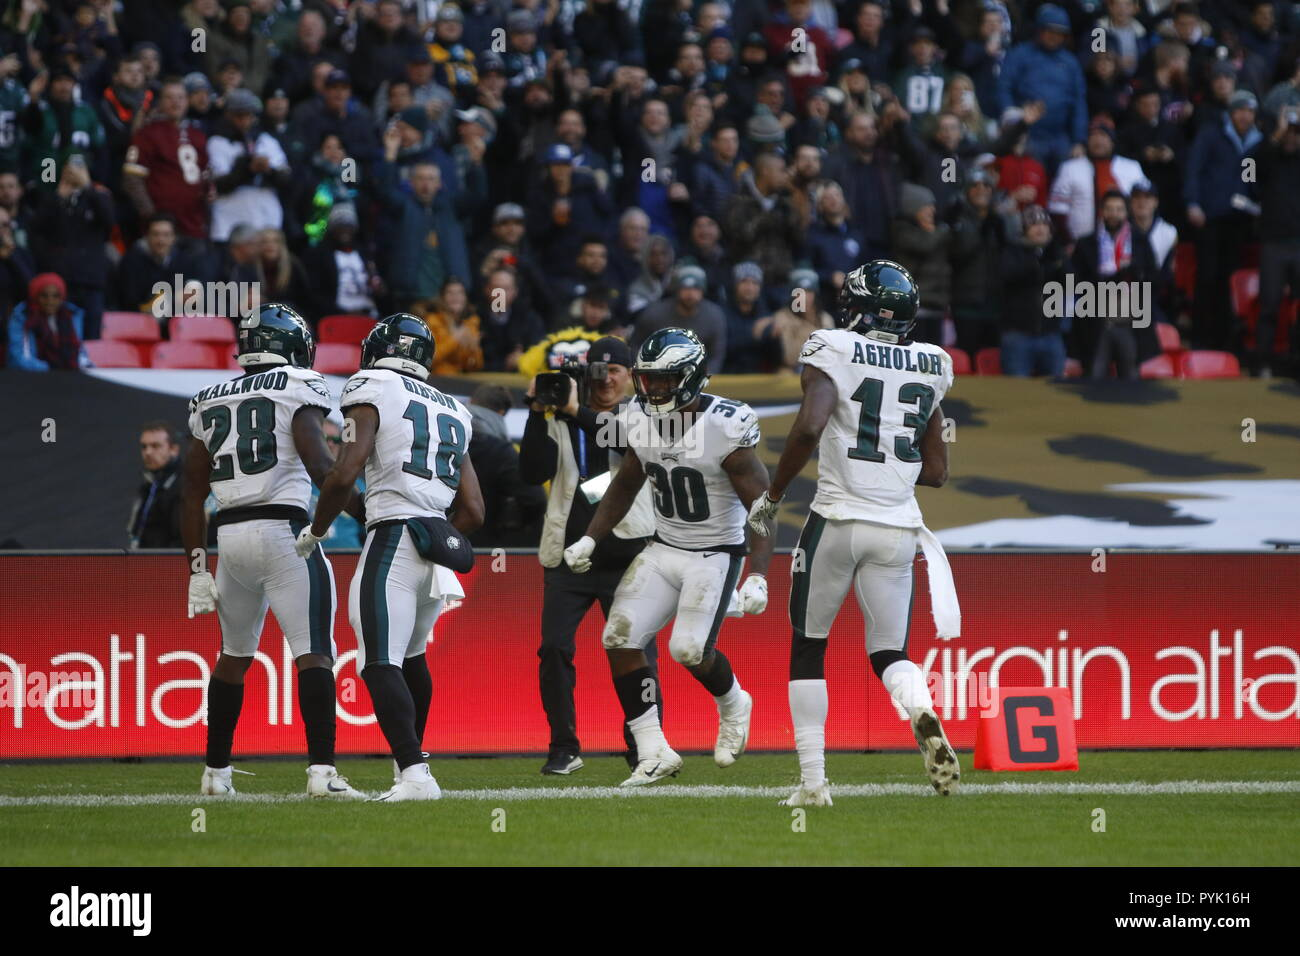 London, UK. 28 October 2018.  Philadelphia Eagles Running Back Wendell Smallwood (28) celebrates his touch down   at the Eagles at Jaguars - credit Glamourstock Credit: glamourstock/Alamy Live News - Stock Image